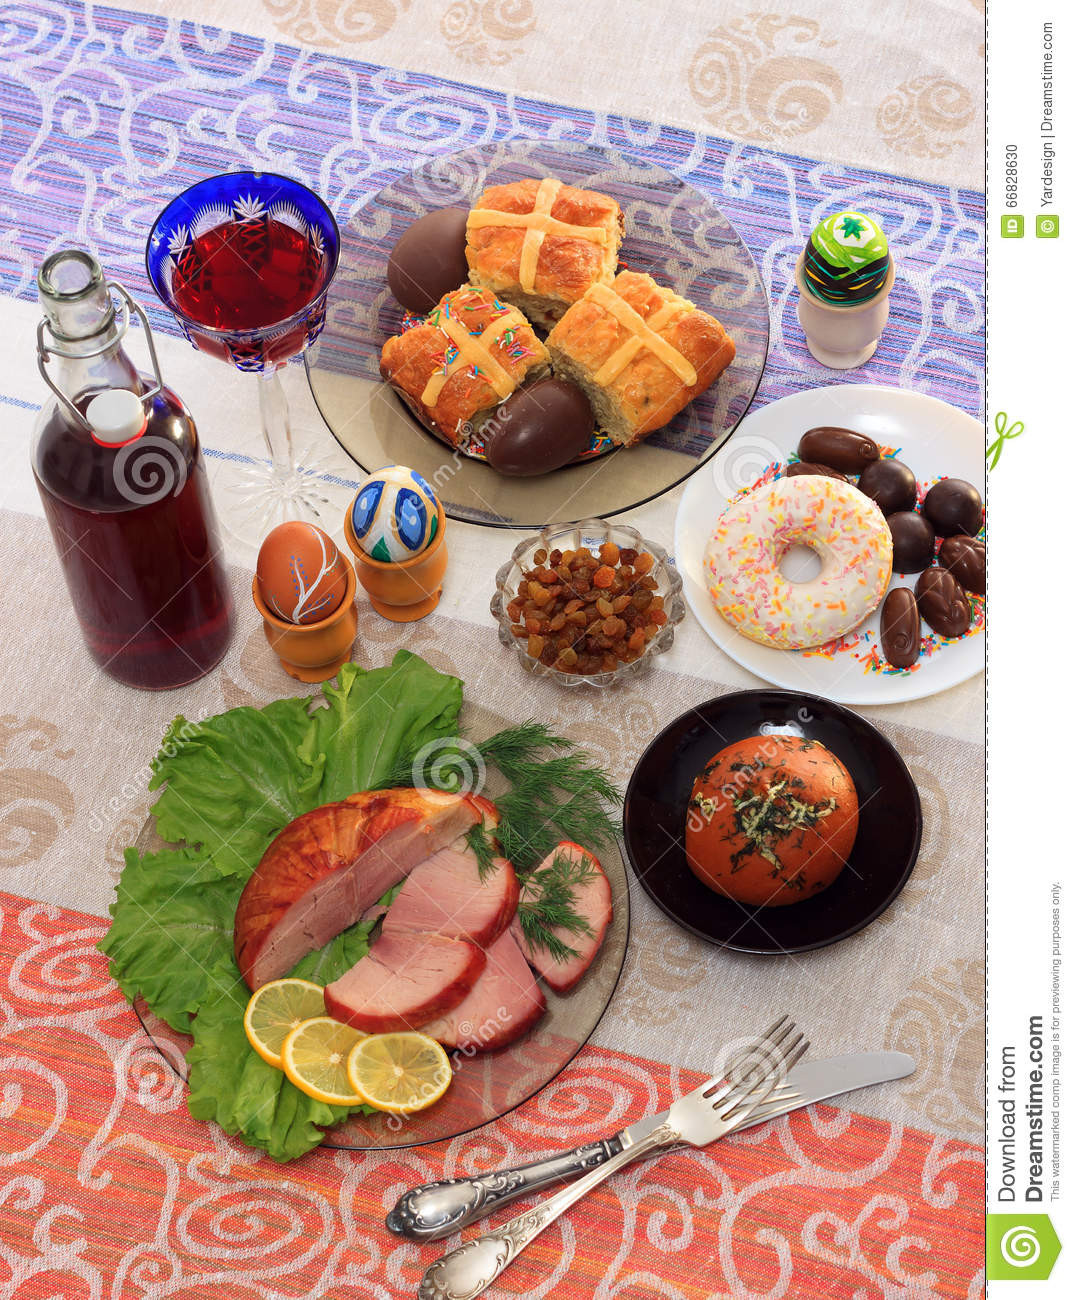 A Popular Easter Dinner  Traditional Easter Dinner Set With Sliced Meat With Lemon